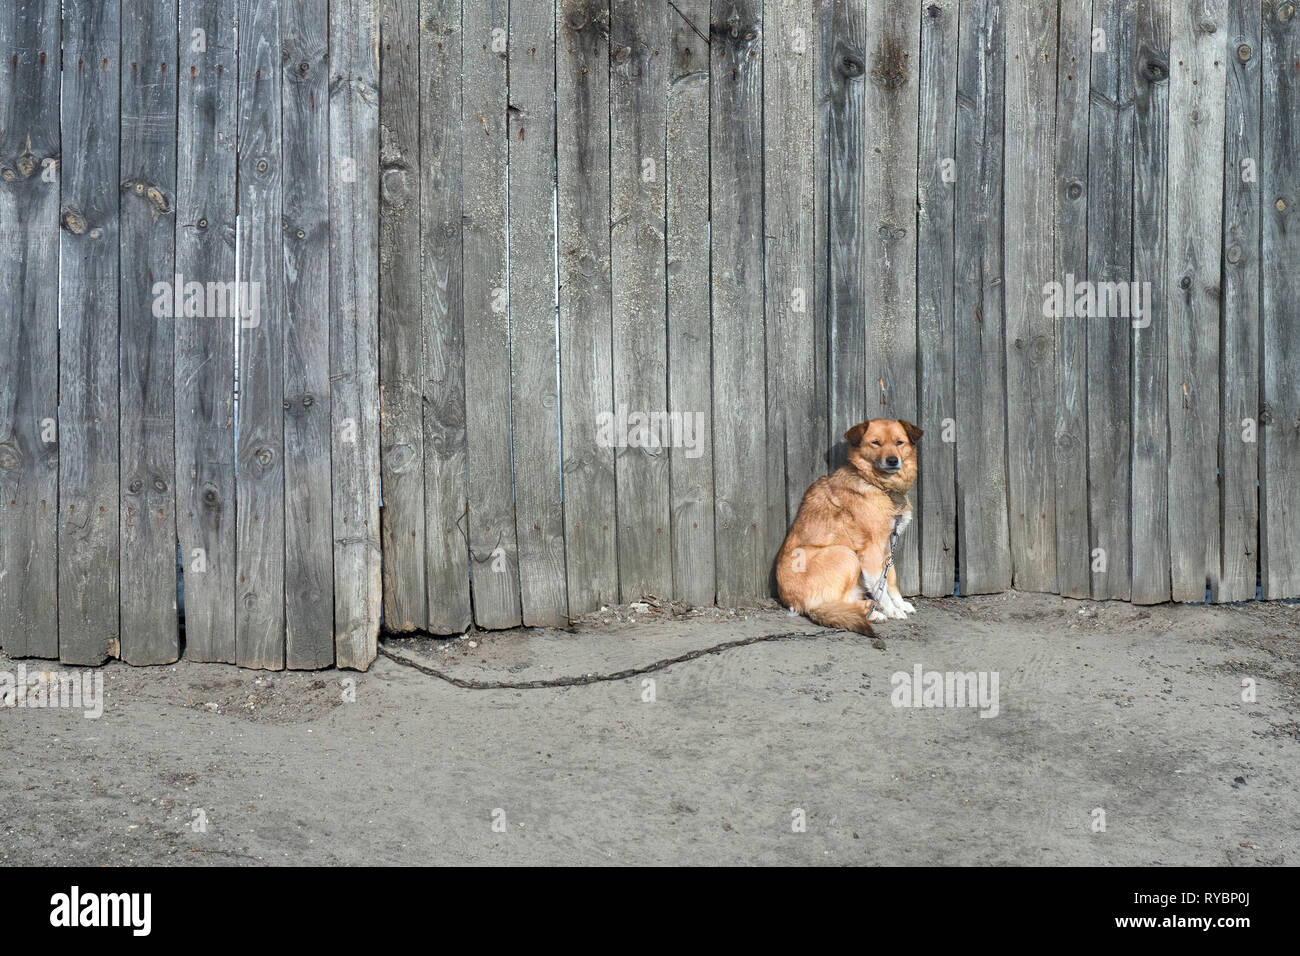 Non-pedigree brown dog sits at the wooden fence. Uncontented animal on chain. High wooden grey fecne on the background for tired dog. Domestic animals - Stock Image